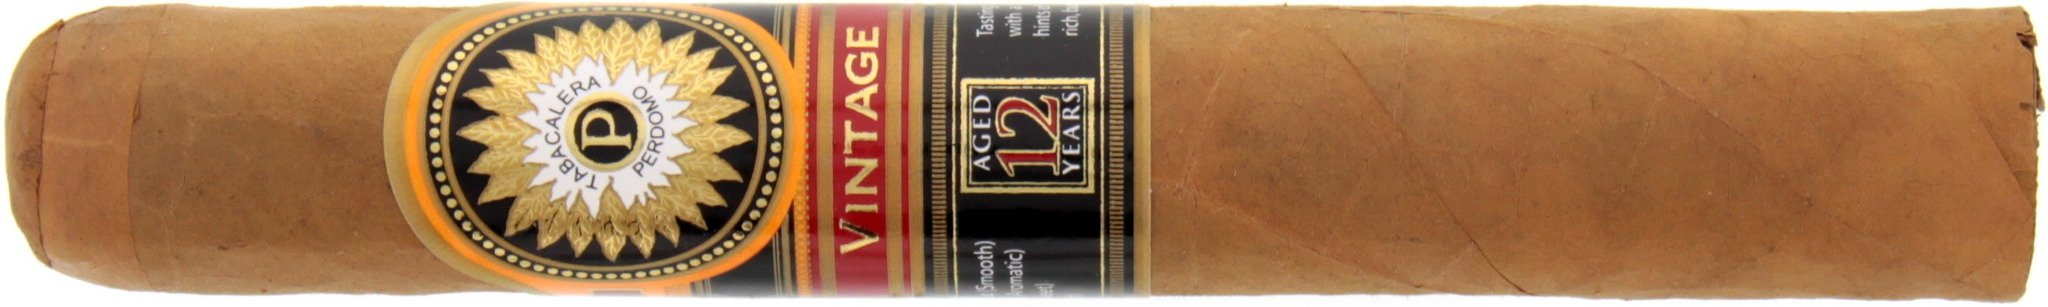 Perdomo Double Aged 12 Year Vintage Epicure (First Release 2014 - Ecuador Connec